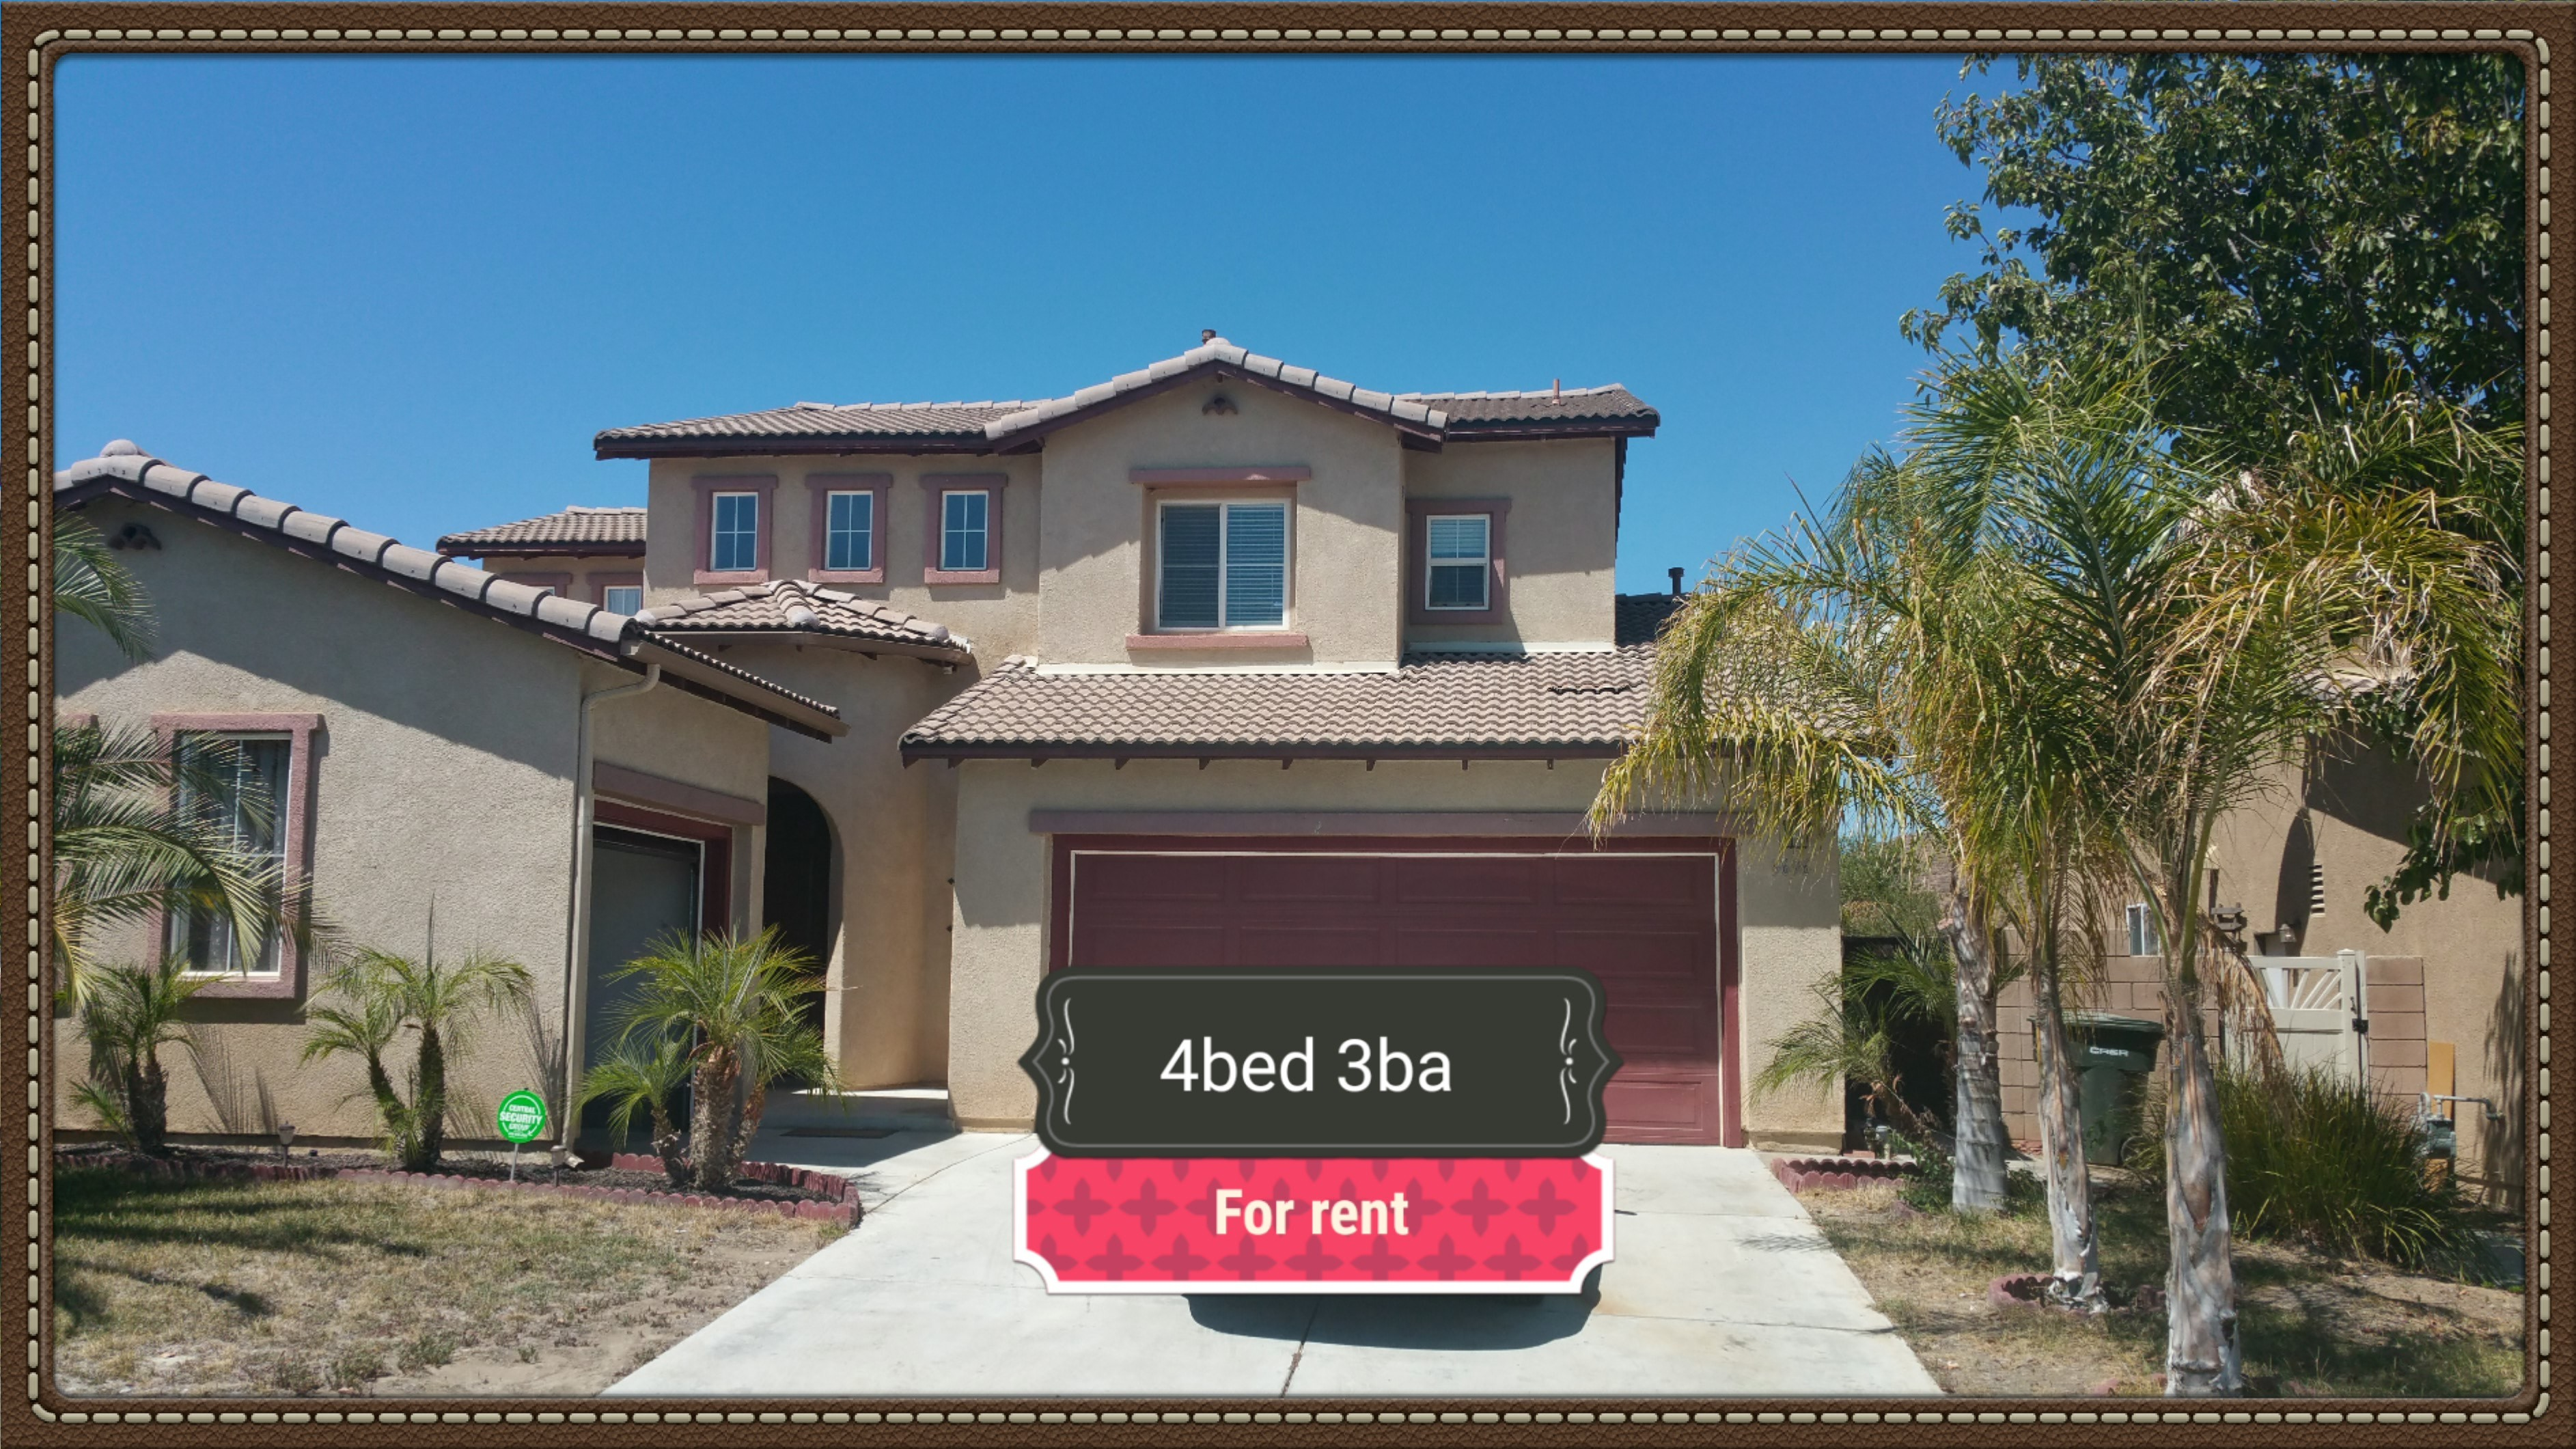 property for rent in perris ca turbo tenant the easiest